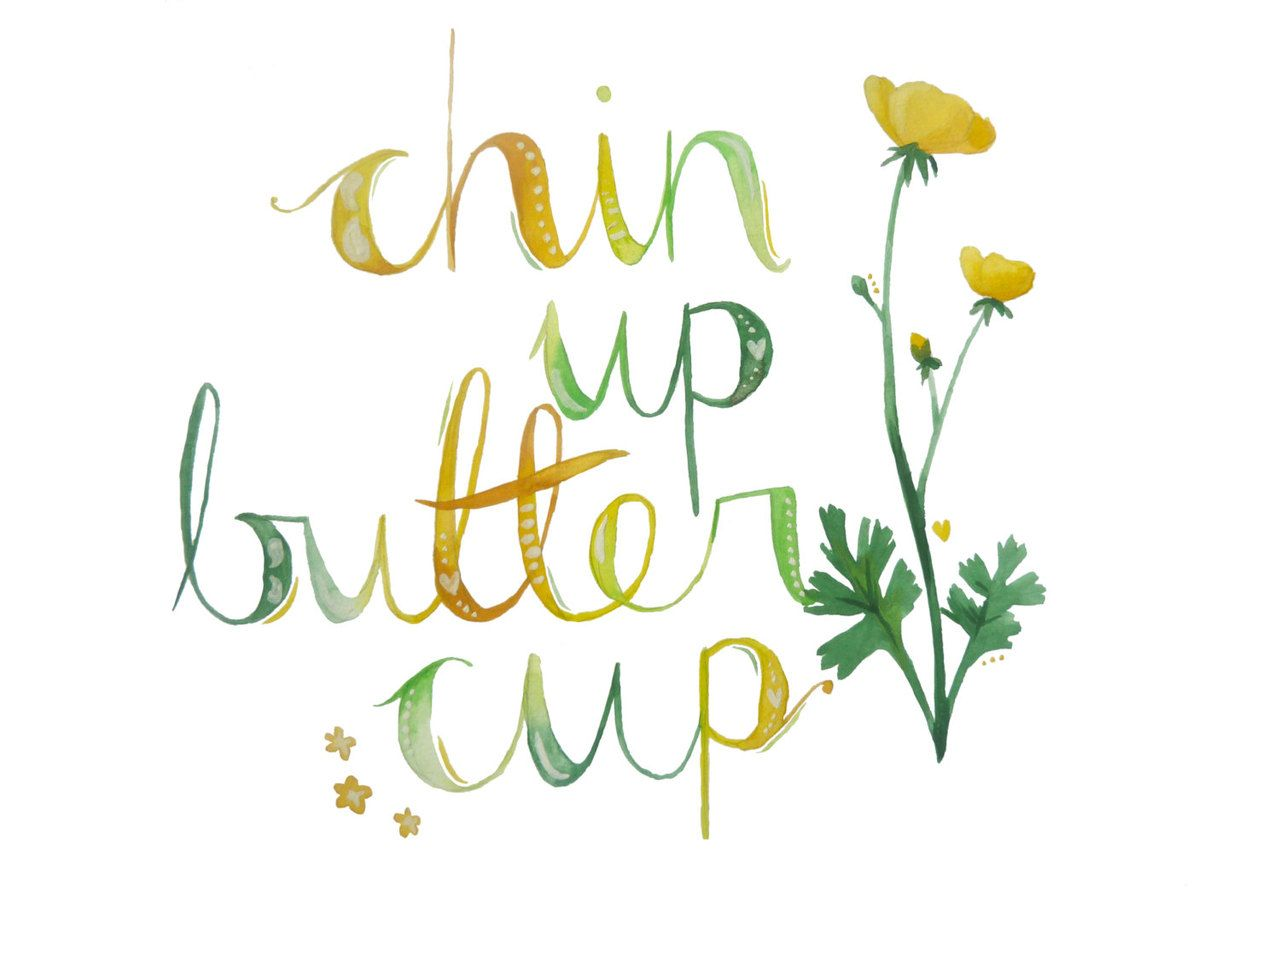 What s up buttercup clipart clip art black and white library Chin Up Buttercup Print, watercolour handwritten quote ... clip art black and white library